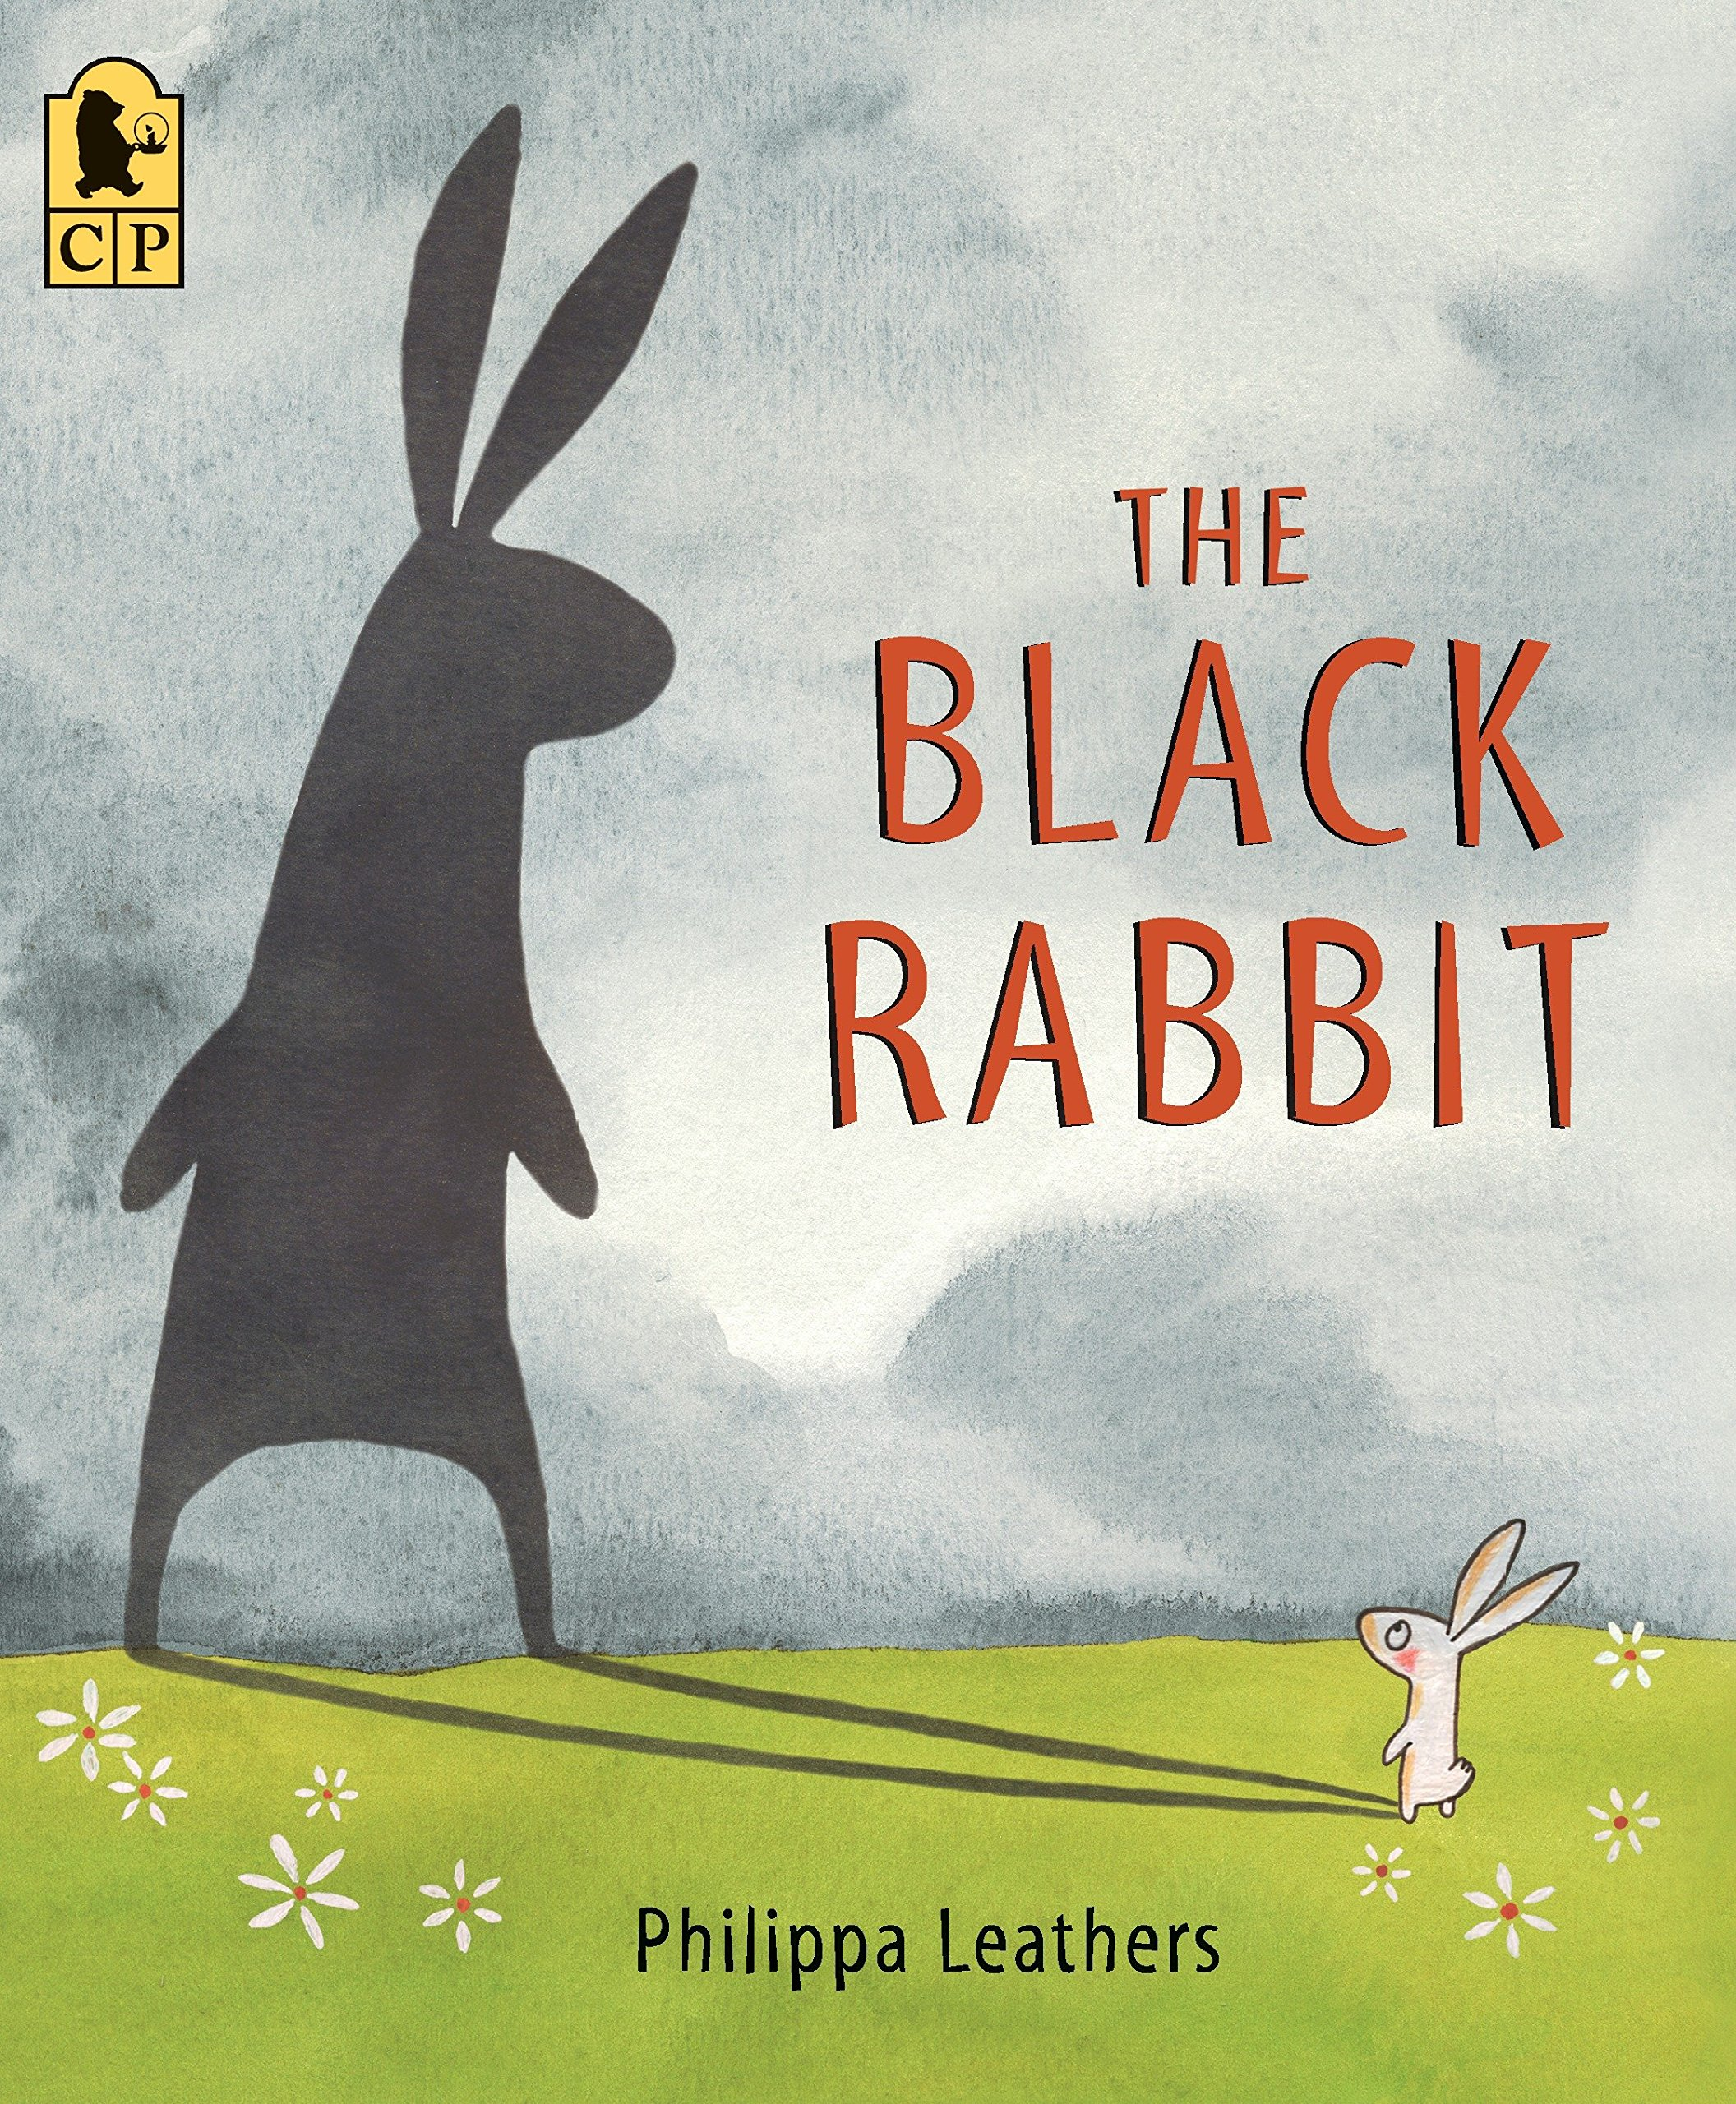 The Black Rabbit